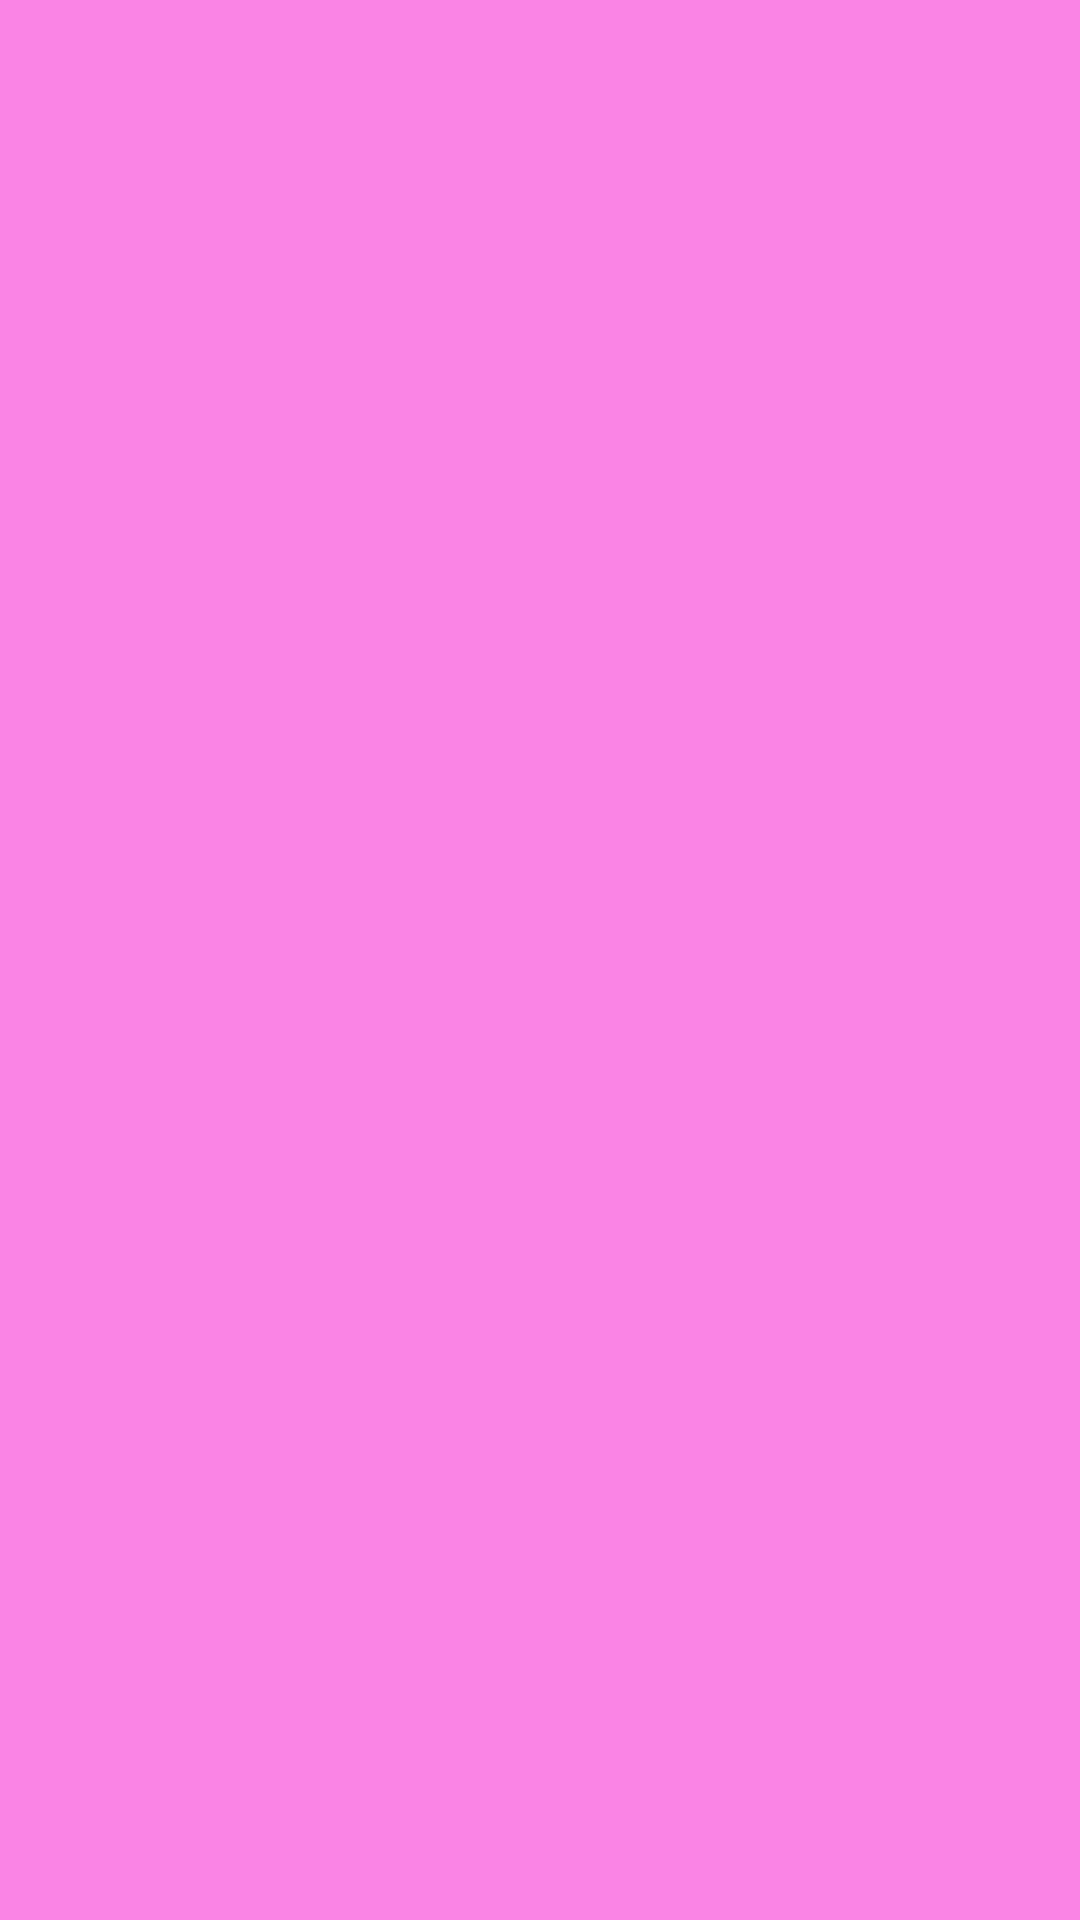 1080x1920 Pale Magenta Solid Color Background